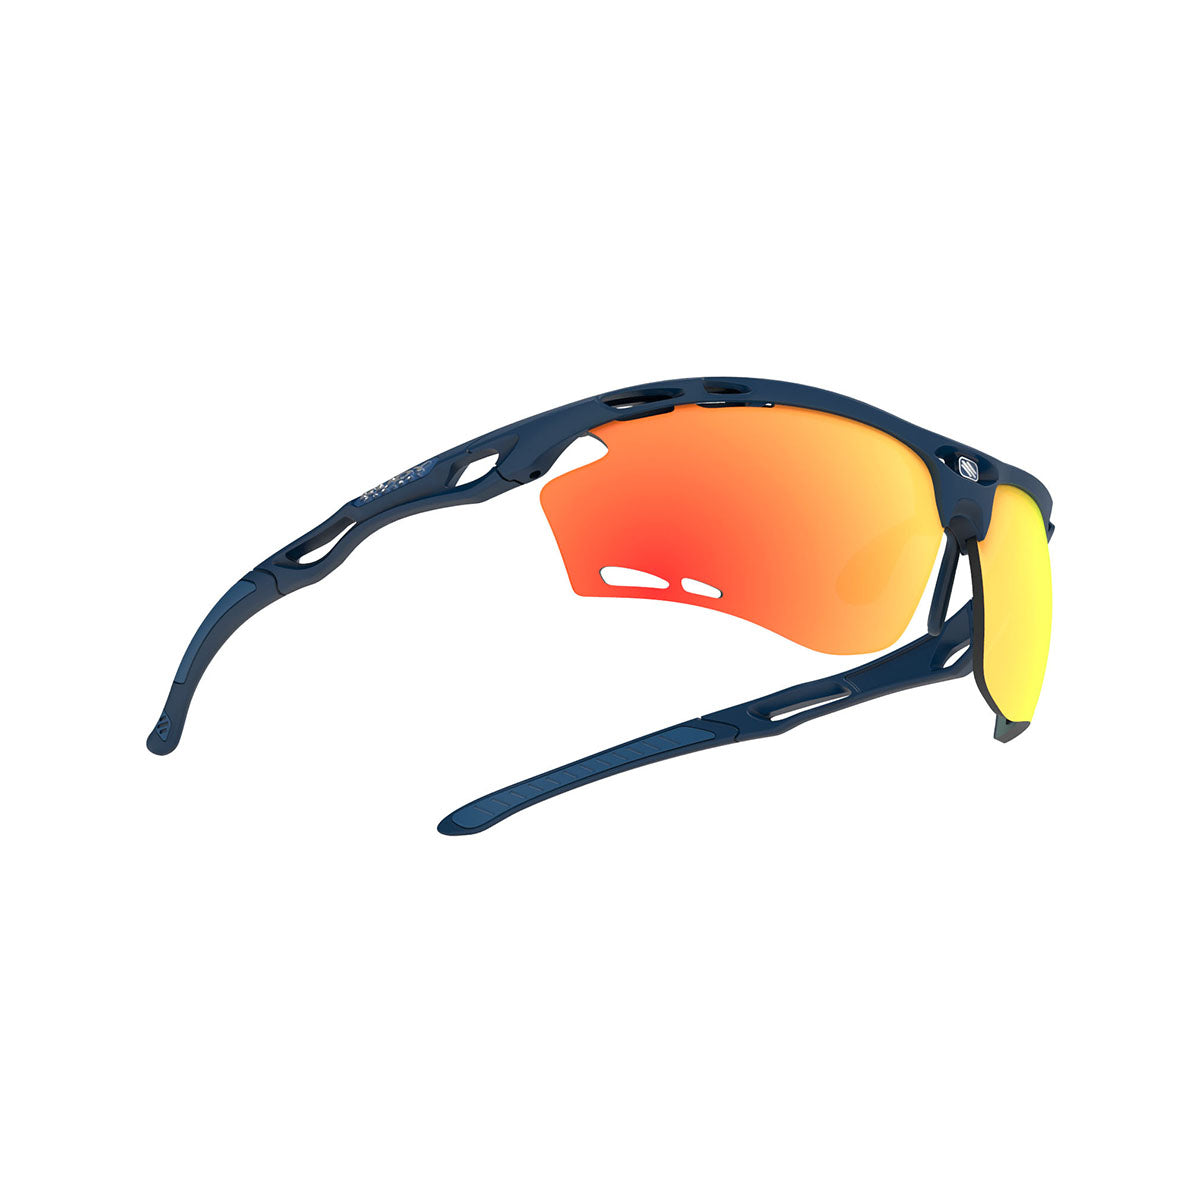 Rudy Project - Propulse - frame color: Navy Blue Matte - lens color: Multilaser Orange - Bumper Color:  - photo angle: Bottom Front Angle Variant Hover Image